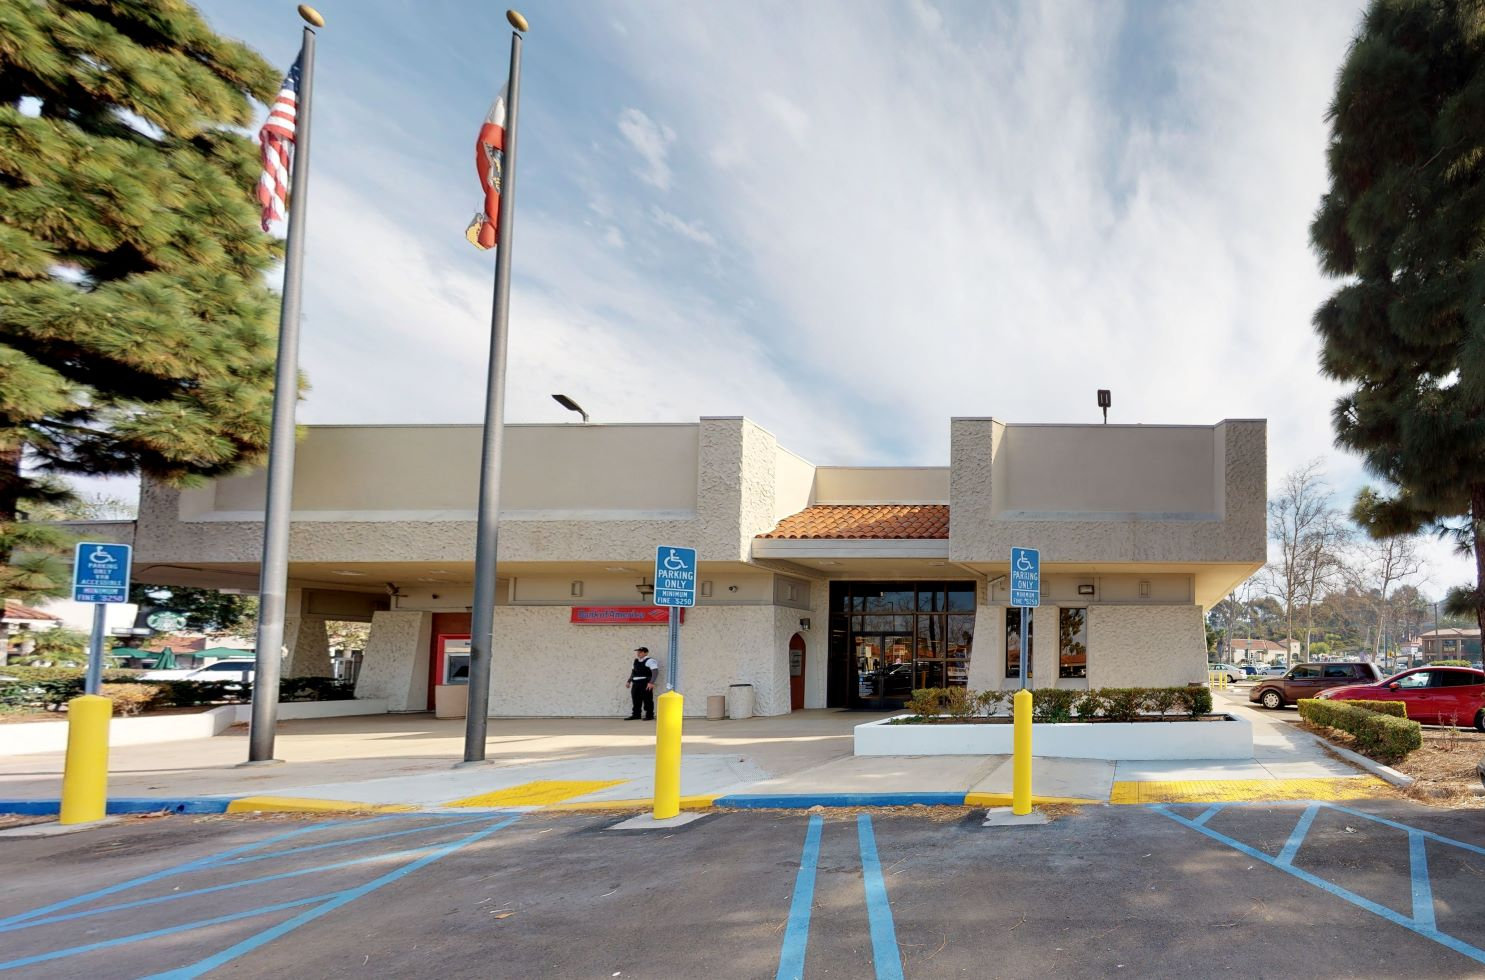 Bank of America financial center with drive-thru ATM | 3756 Mission Ave, Oceanside, CA 92058